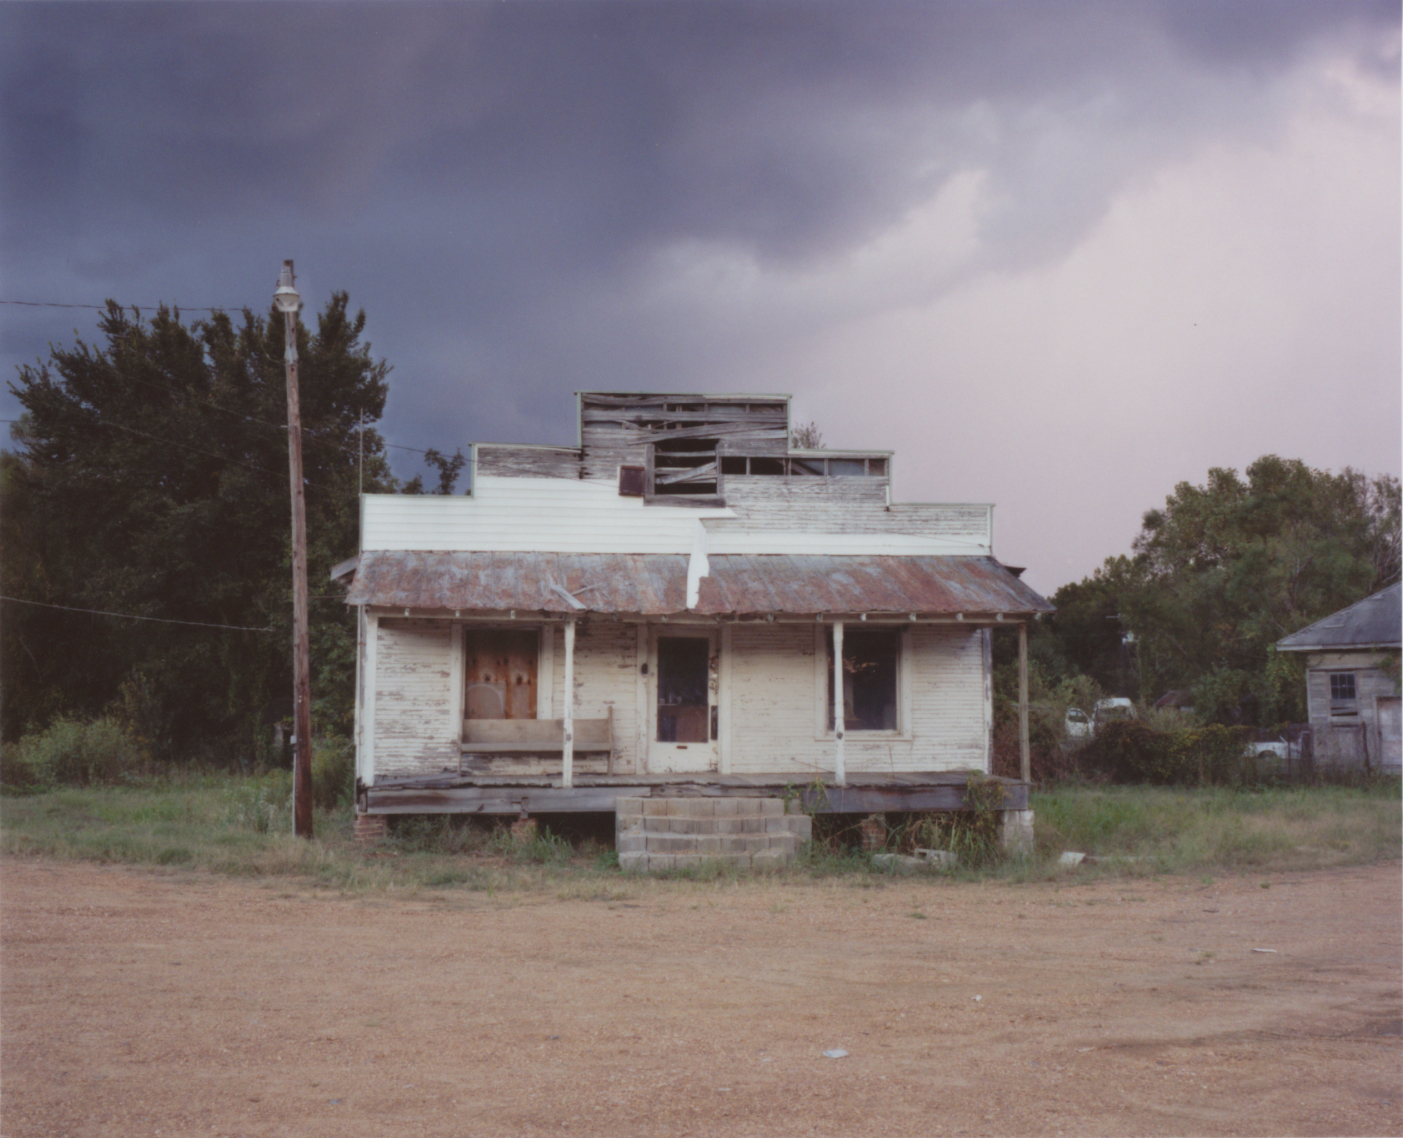 - Savage, Mississippi2012Chromogenic print16 x 20 inches